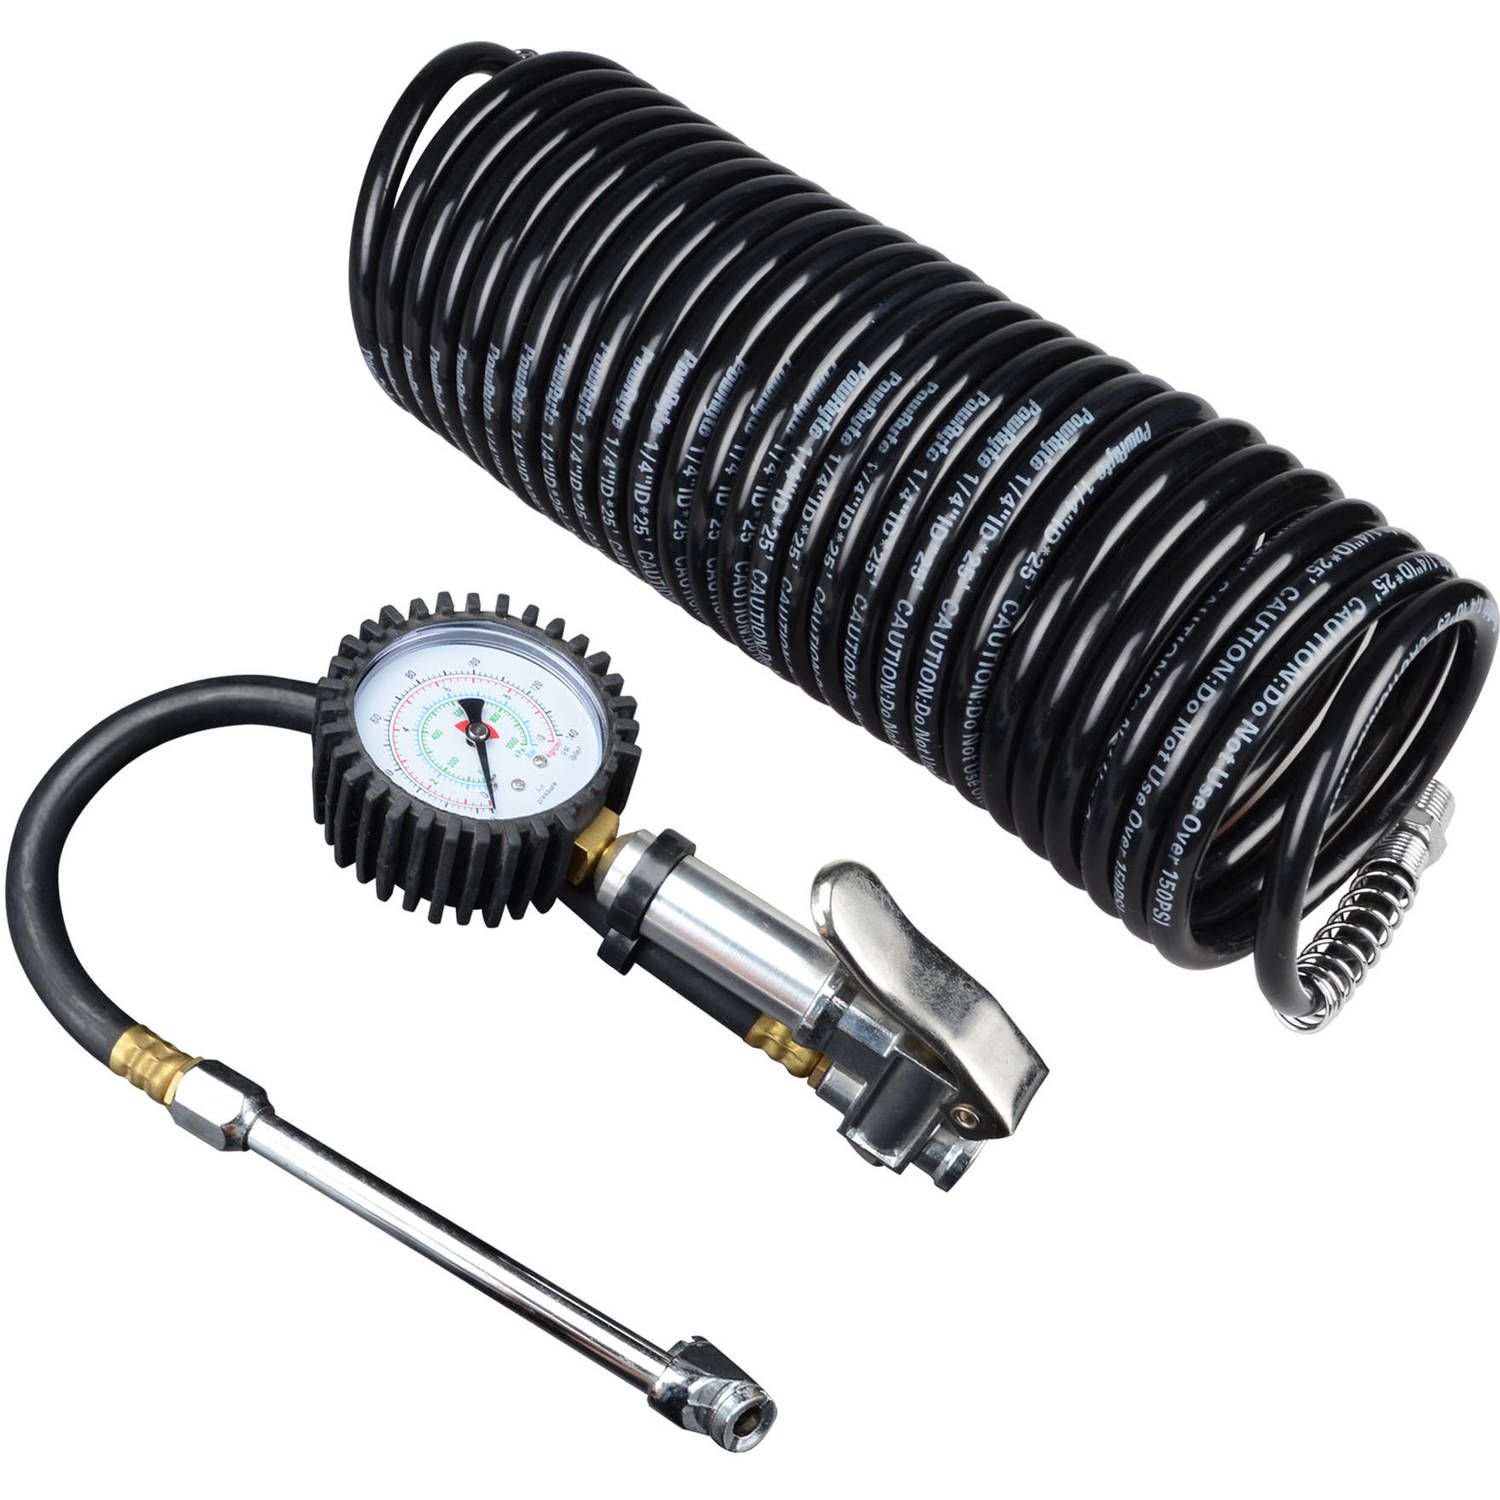 PowRyte 500140 Basic 140 PSI Dual Chuck Air Tire Inflator and Recoil Air Hose Kit